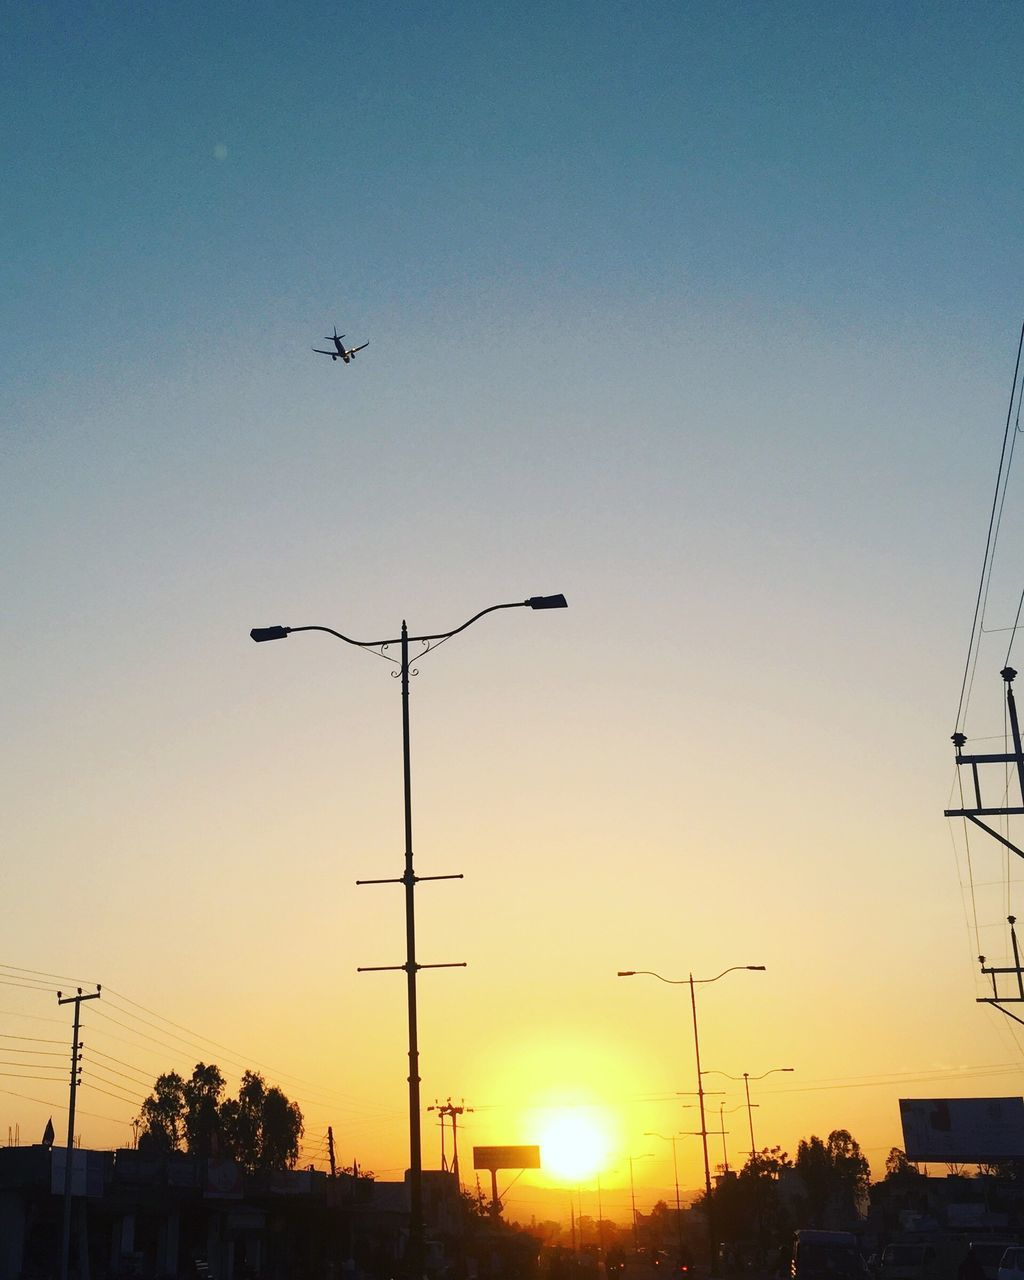 sunset, flying, silhouette, low angle view, street light, bird, no people, animal themes, outdoors, animals in the wild, sky, clear sky, nature, transportation, beauty in nature, technology, spread wings, day